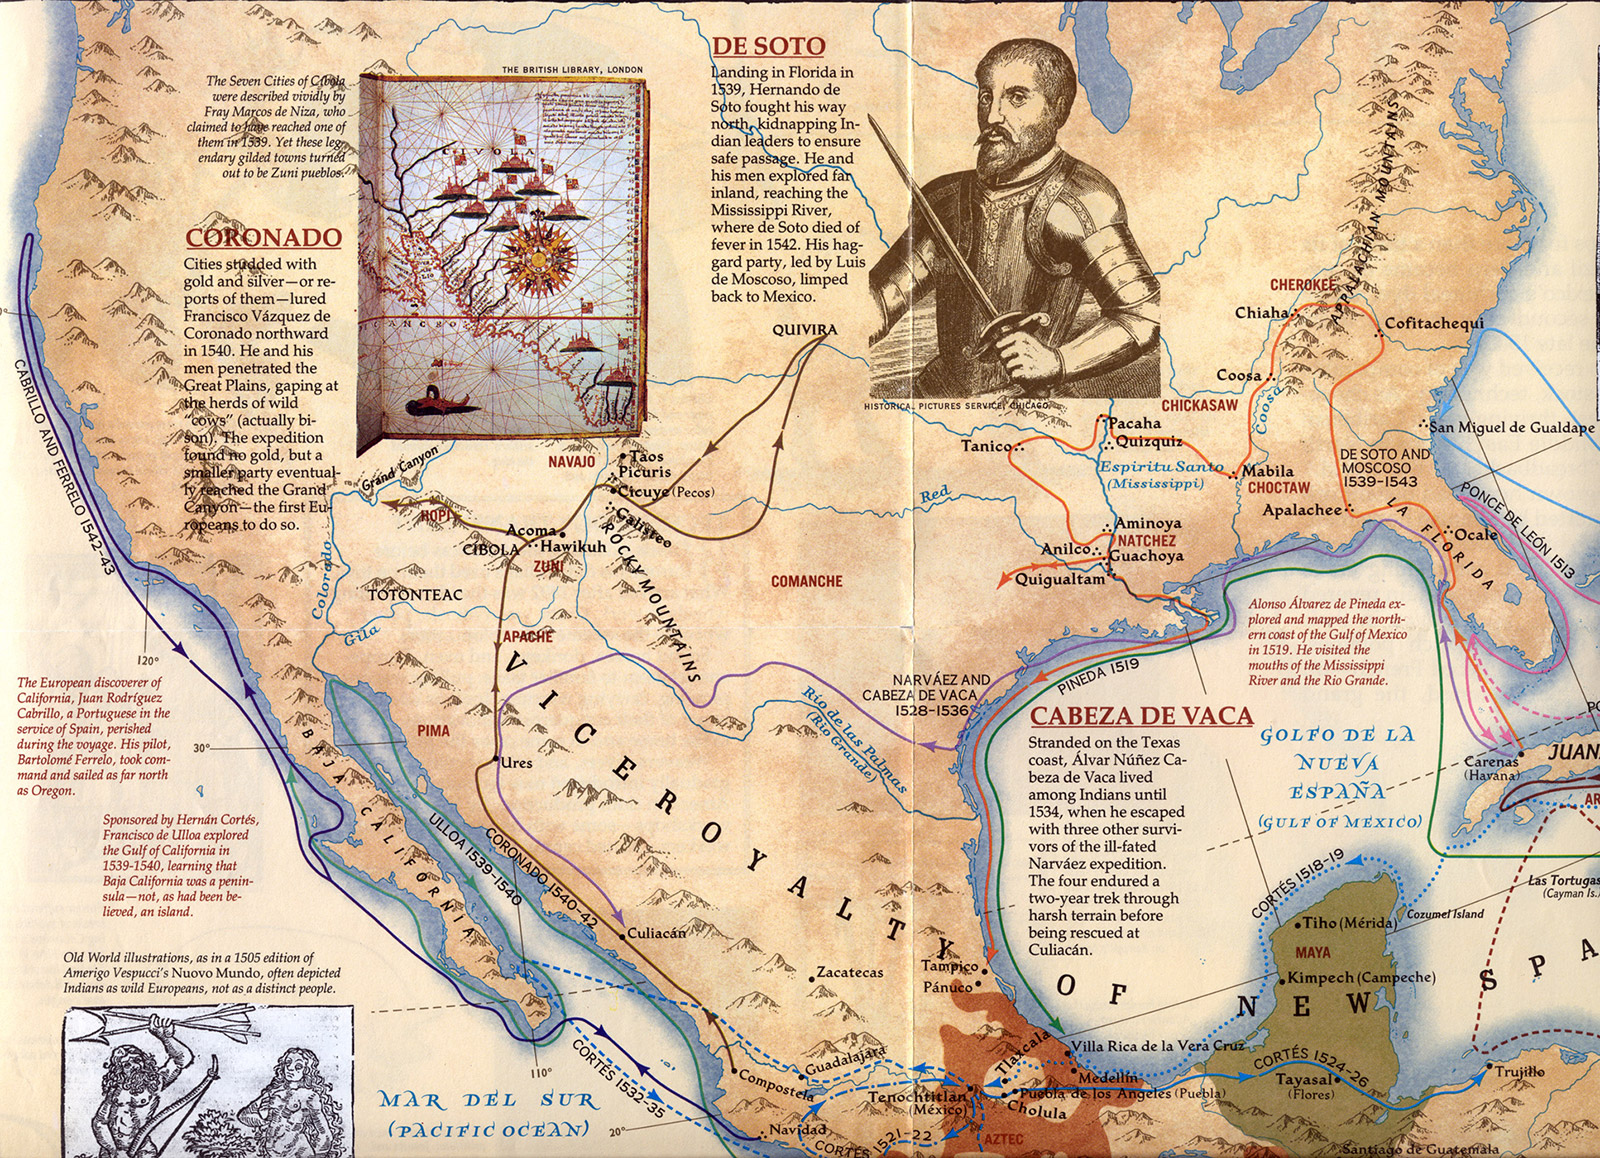 conquest of south america essay Spanish conquest essay the spanish conquest of north america was actually a disrupter to further development caribbean south america.